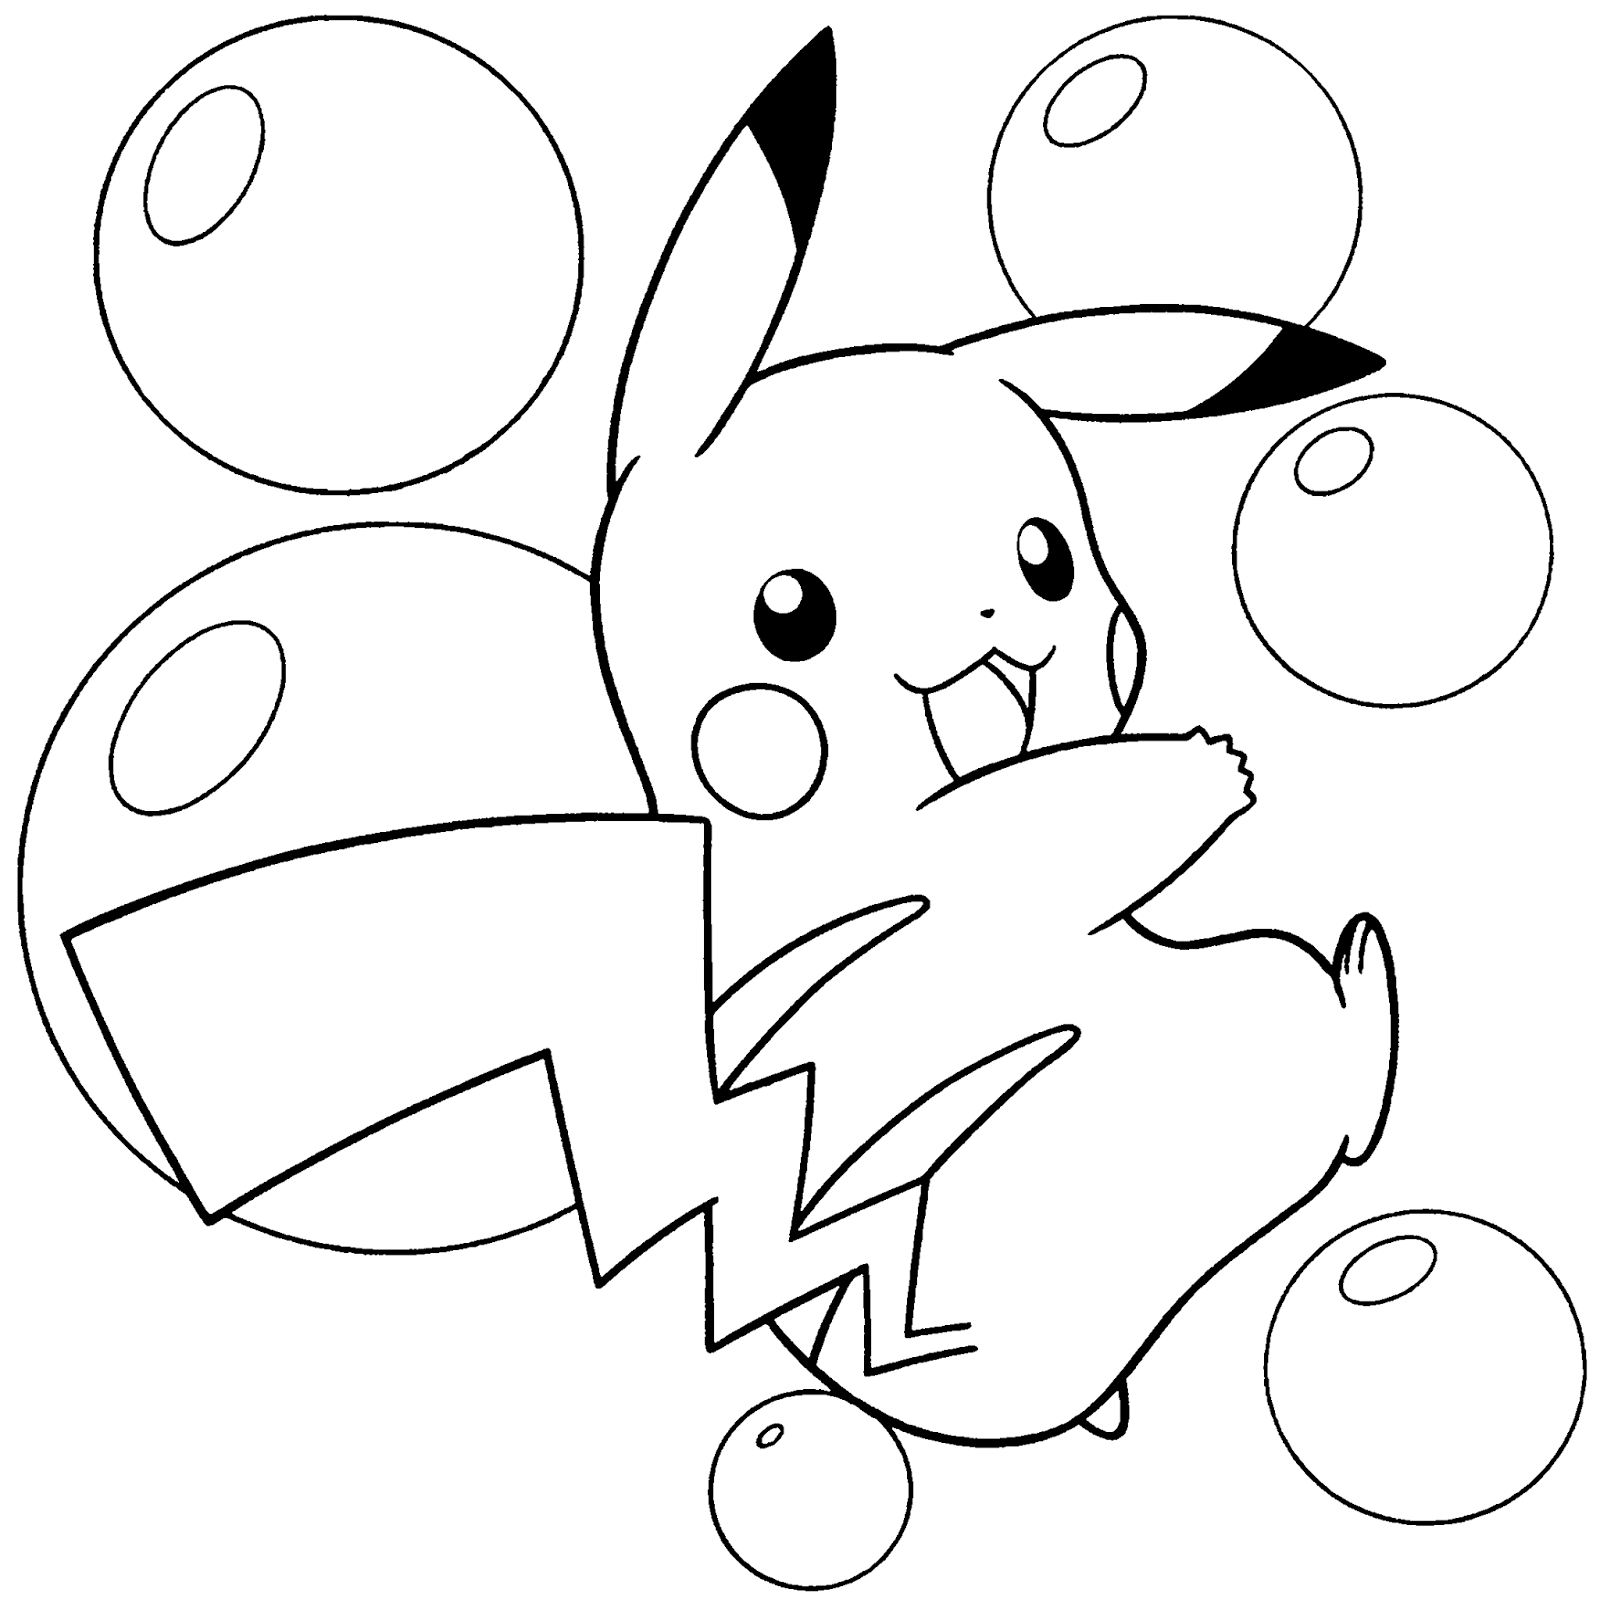 pokemon coloring pages to print pokemon coloring pages join your favorite pokemon on an print pokemon to coloring pages